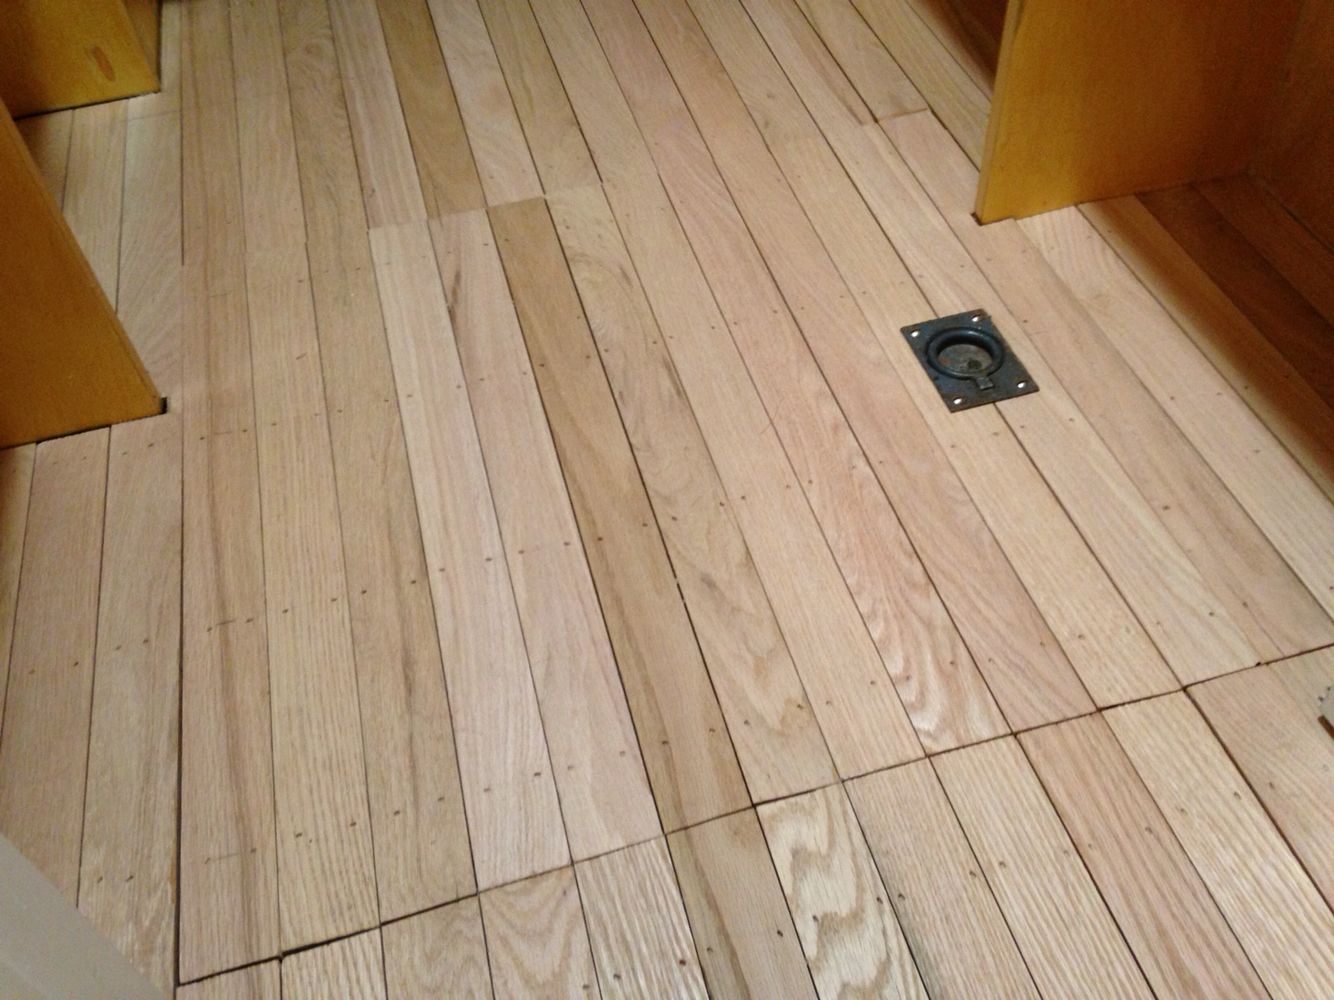 Crawl Space Access That Disappears Into The Hardwood